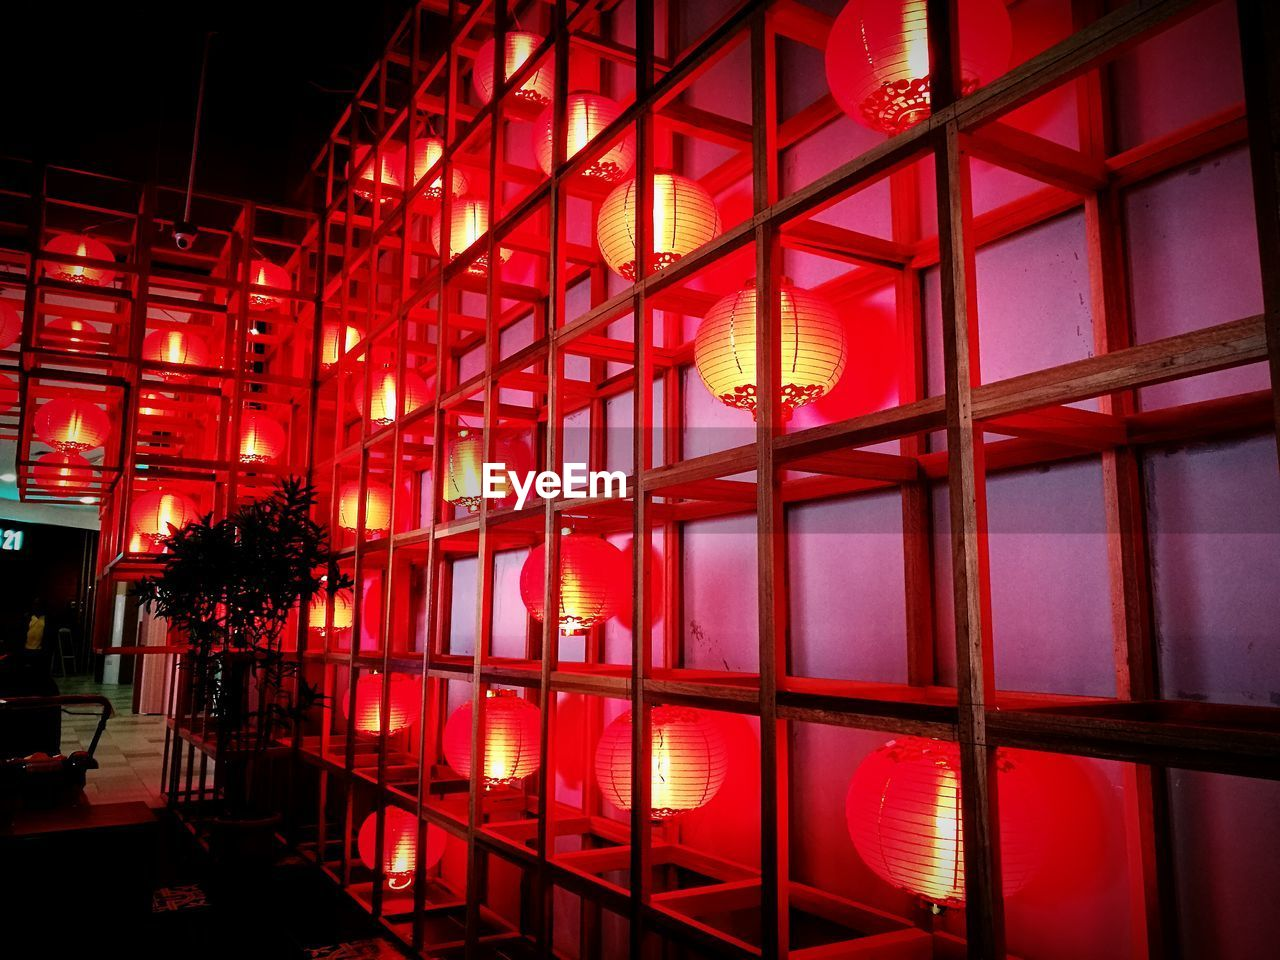 indoors, illuminated, architecture, red, built structure, window, night, no people